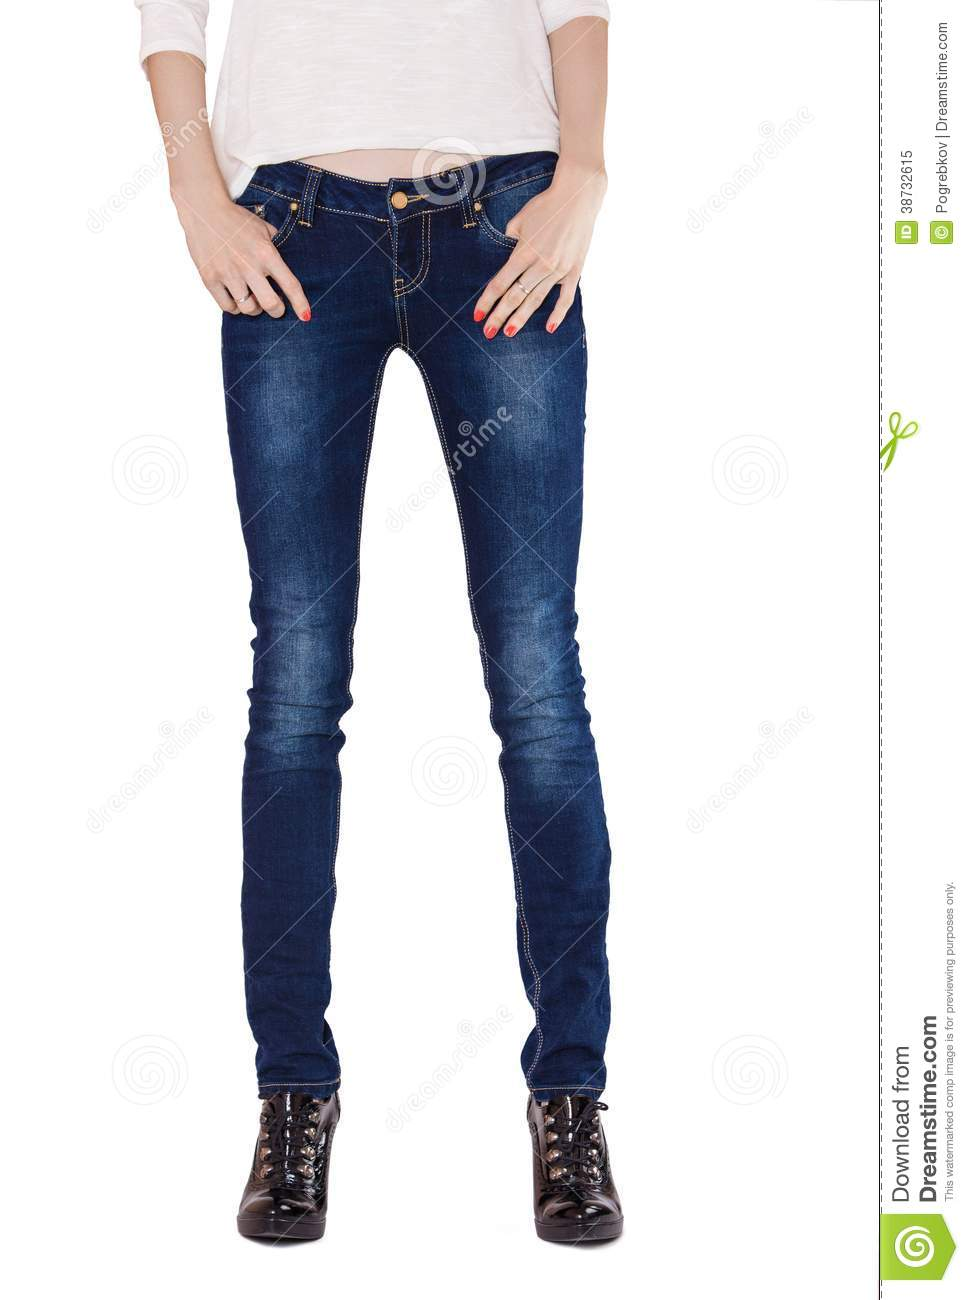 816bf33683 Shapely Female Legs Dressed In Dark Blue Jeans Stock Image - Image ...